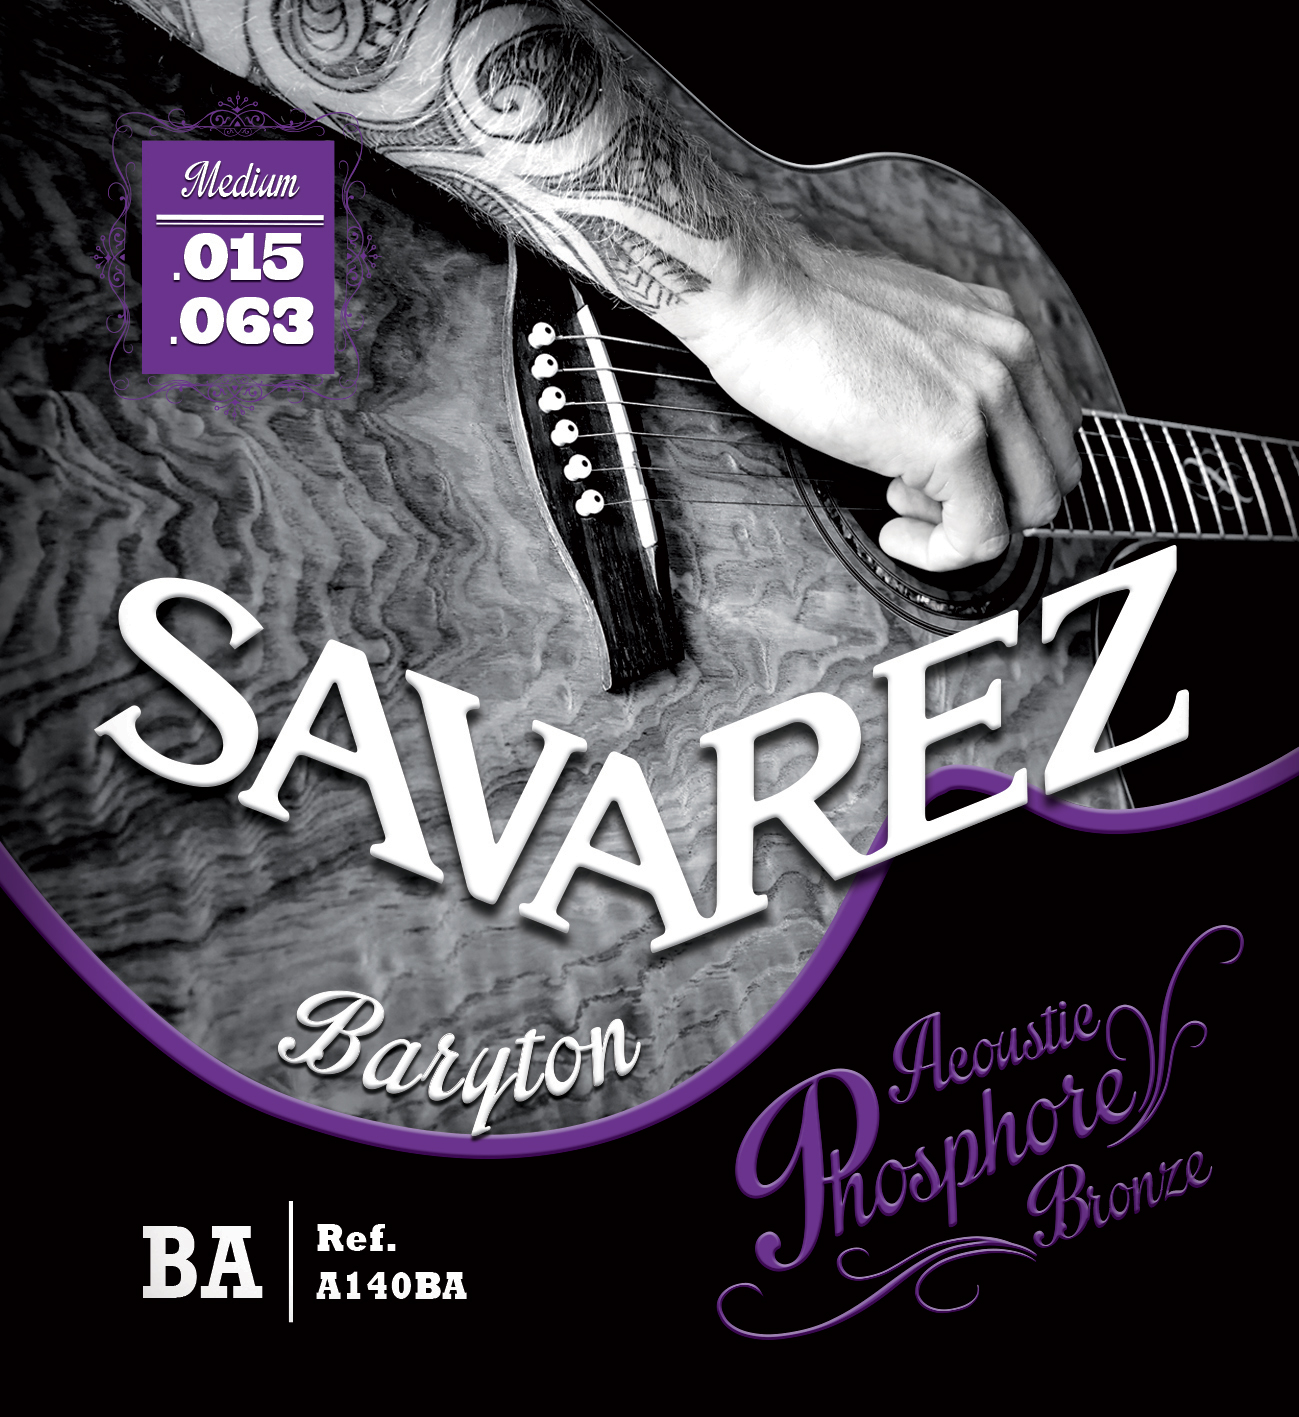 SAVAREZ ACOUSTIC PHOSPHORE BRONZE A140BA